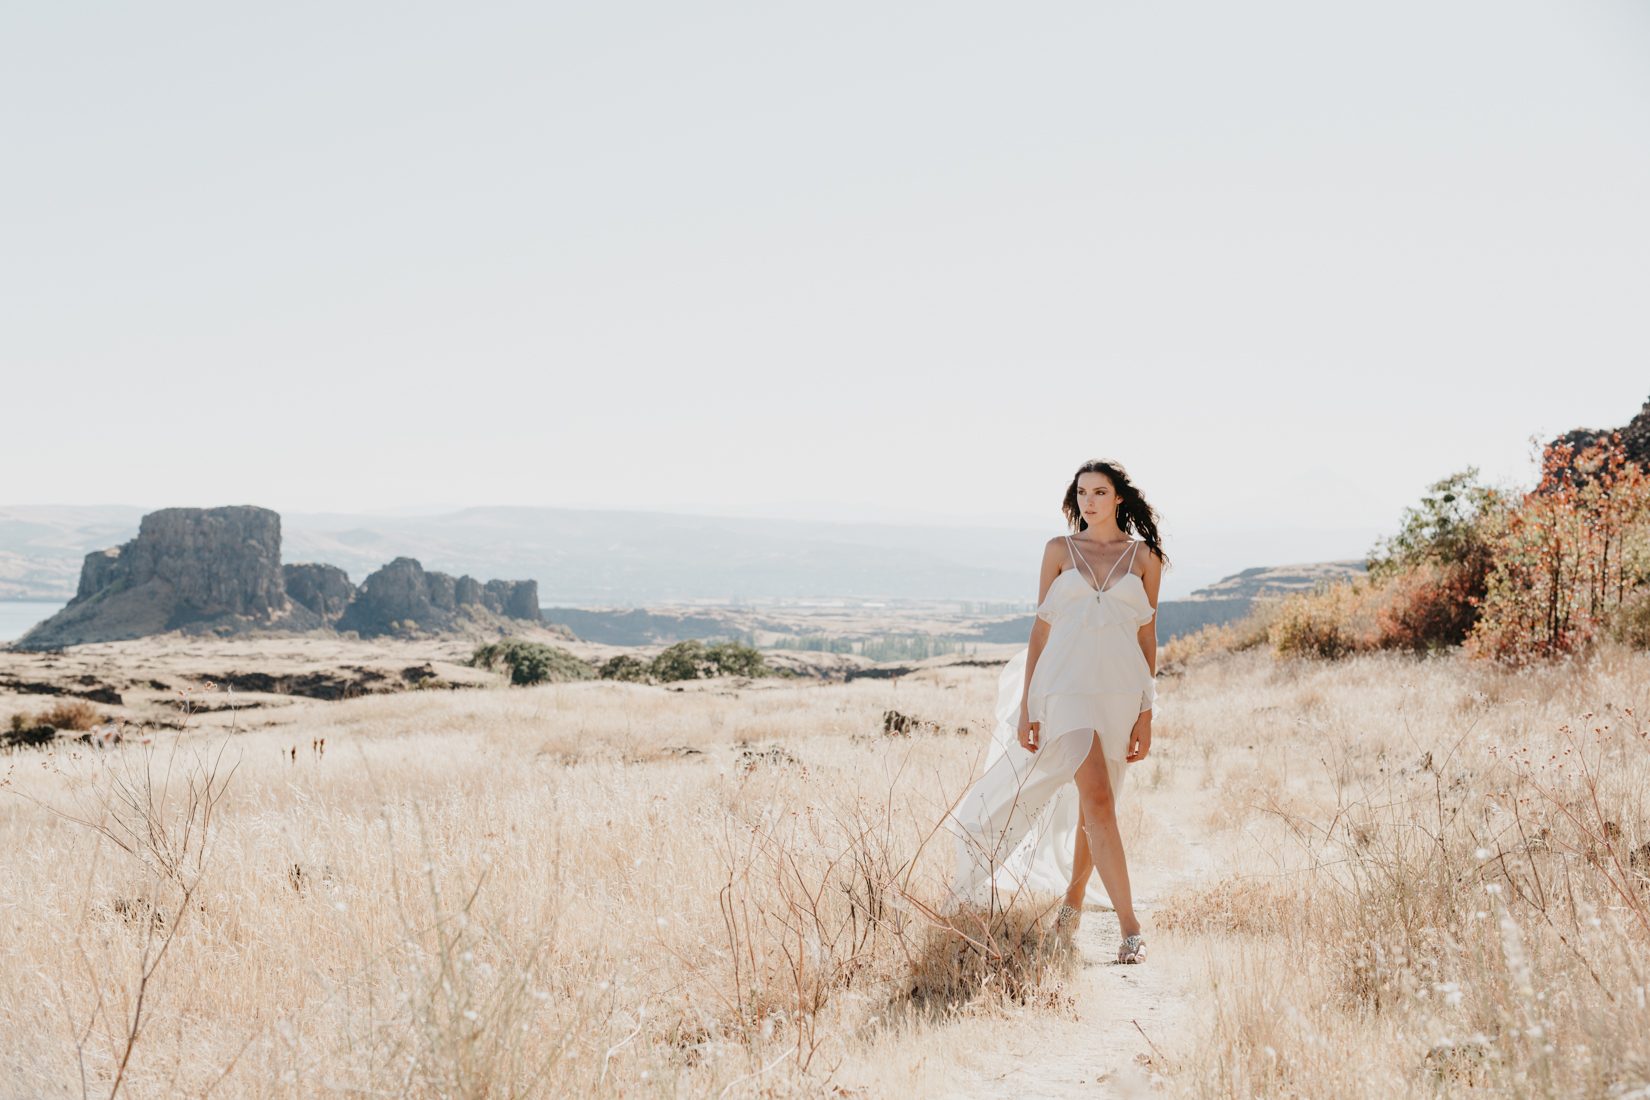 local portland dress designers new bridal collection